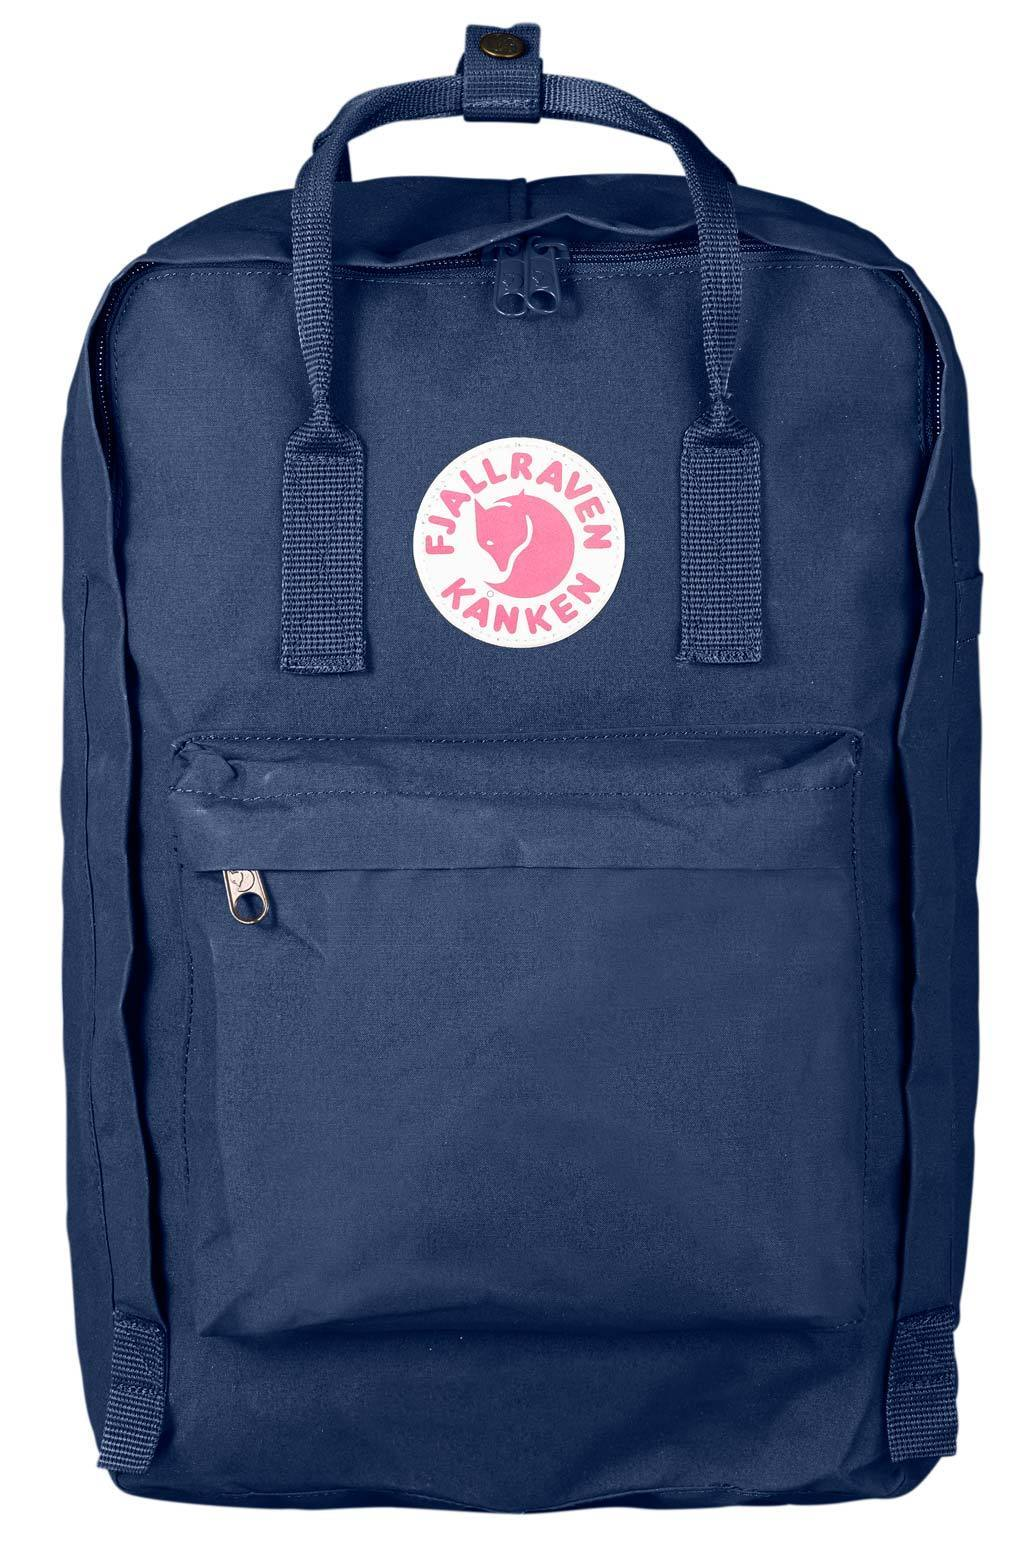 9661d464f19 The Kanken Laptop 17 is a 17